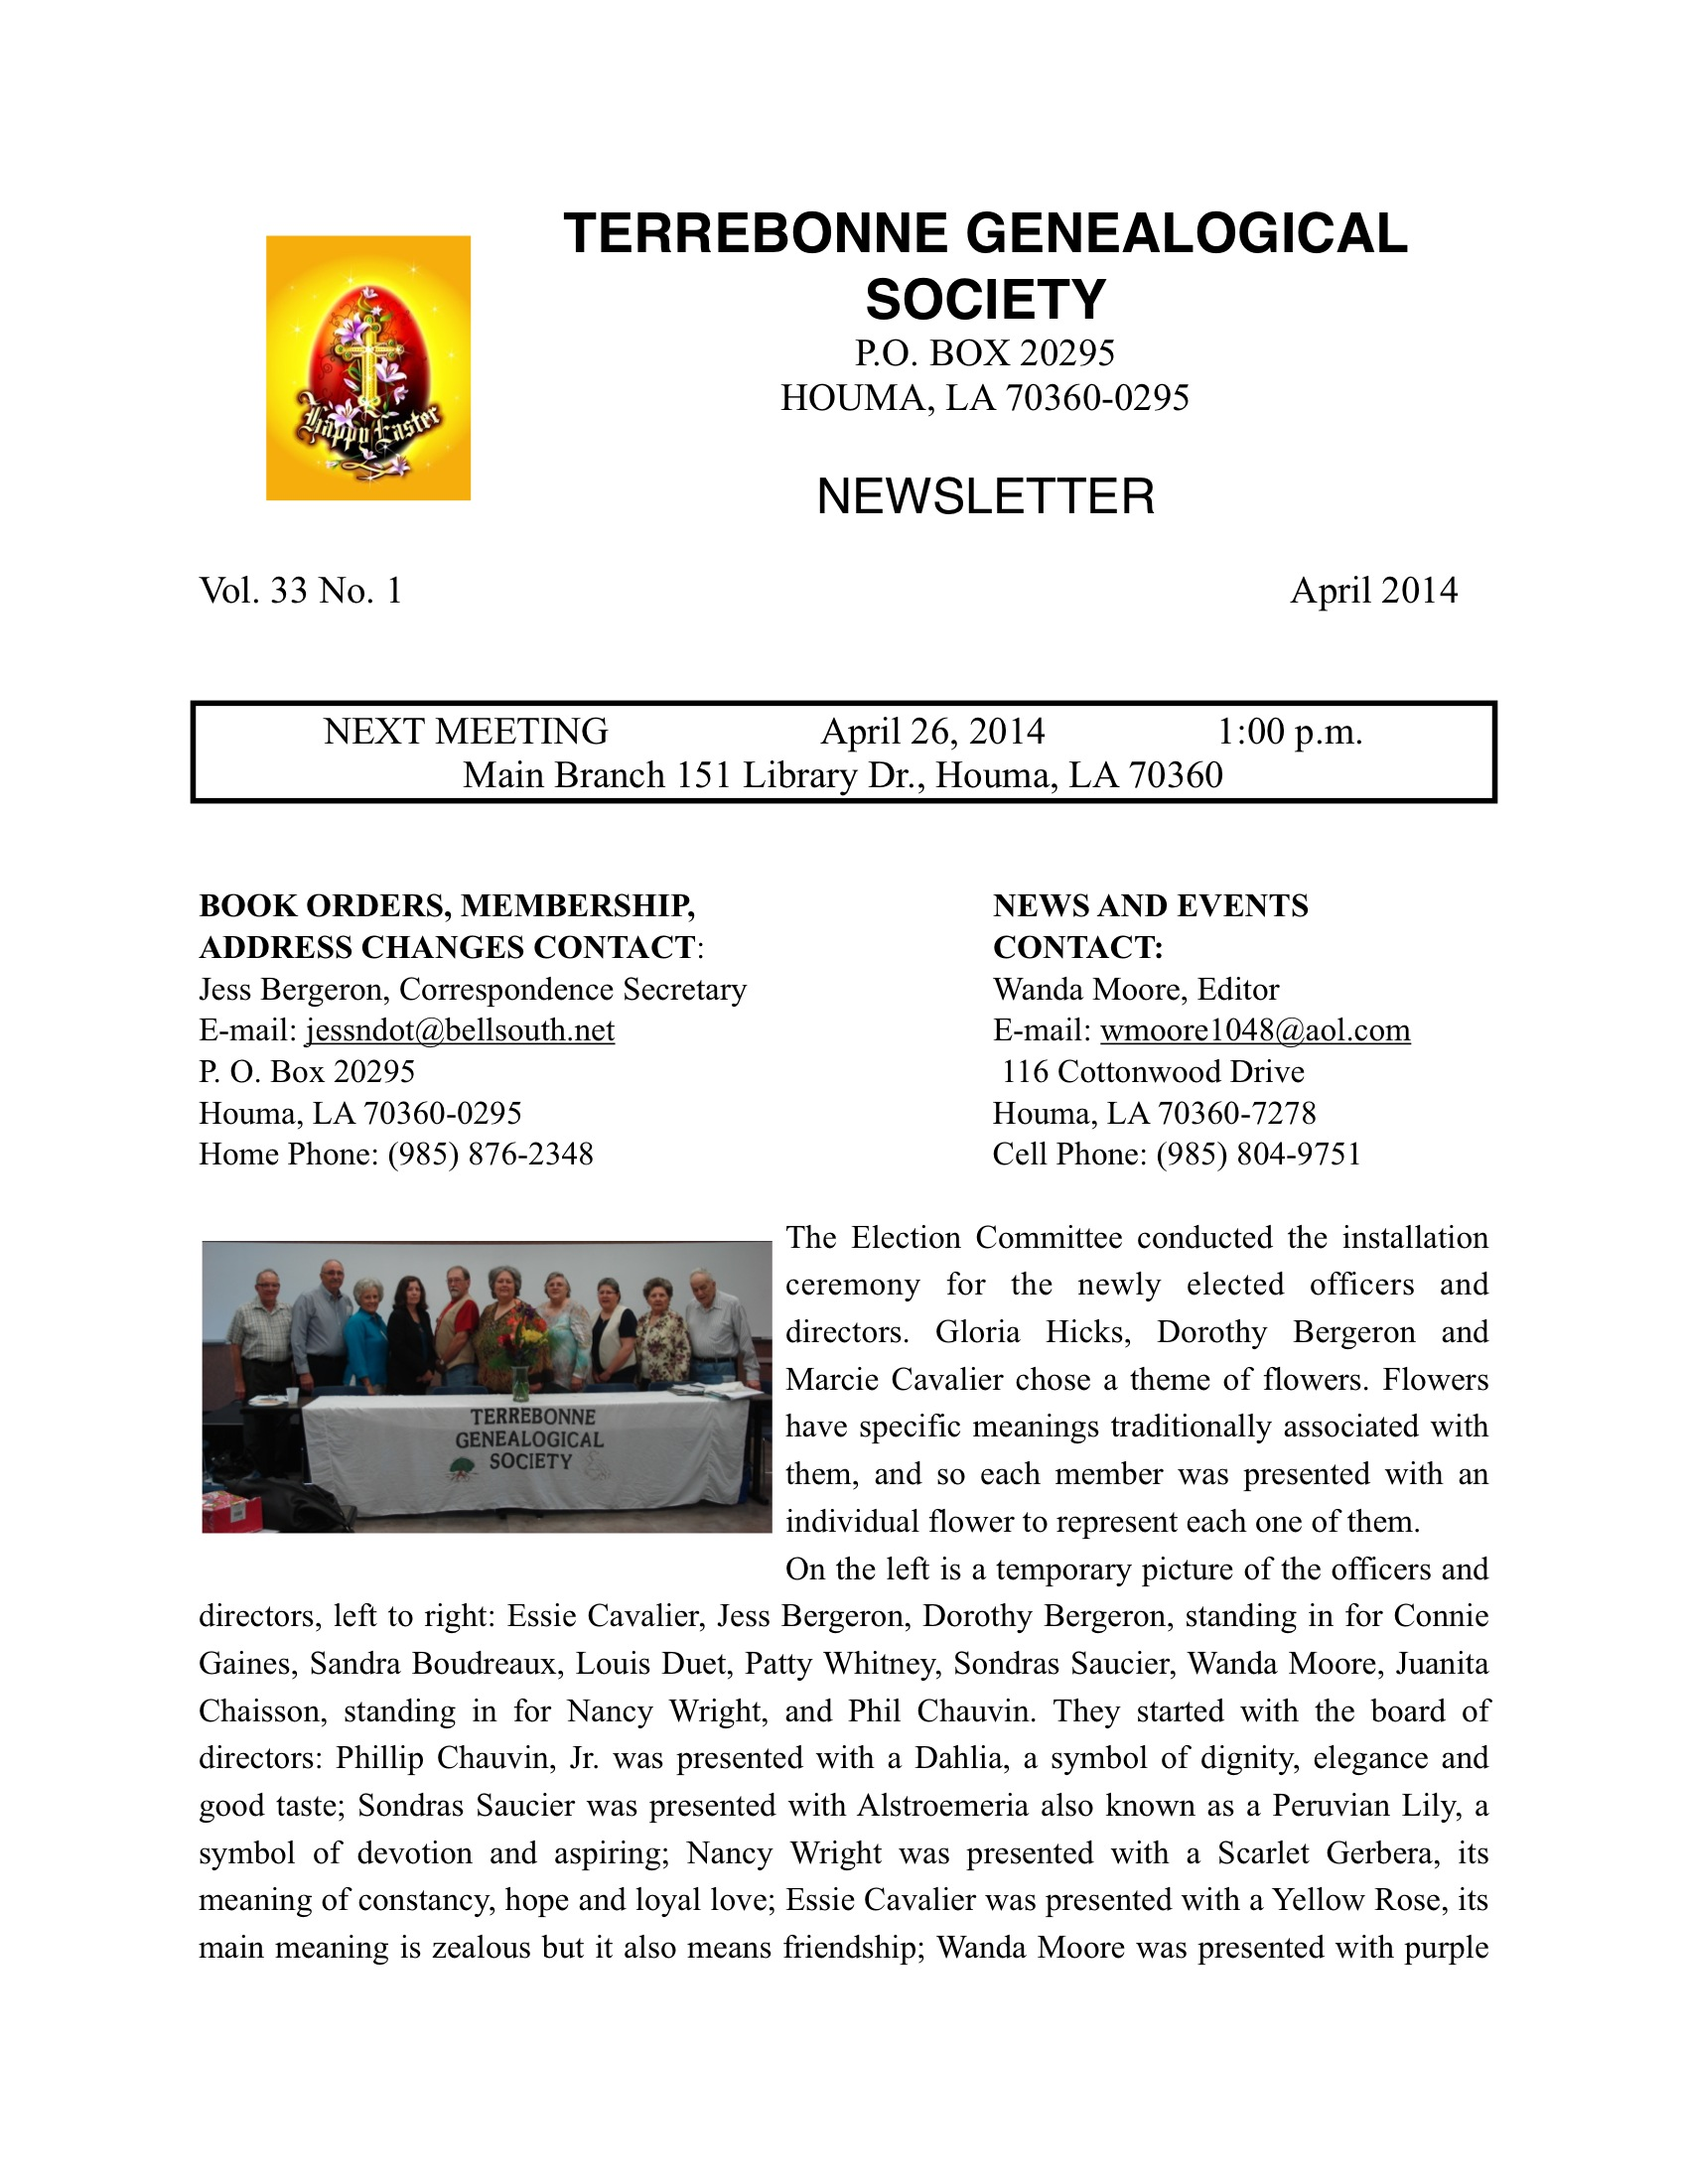 Newsletter VOL. 33 No 1